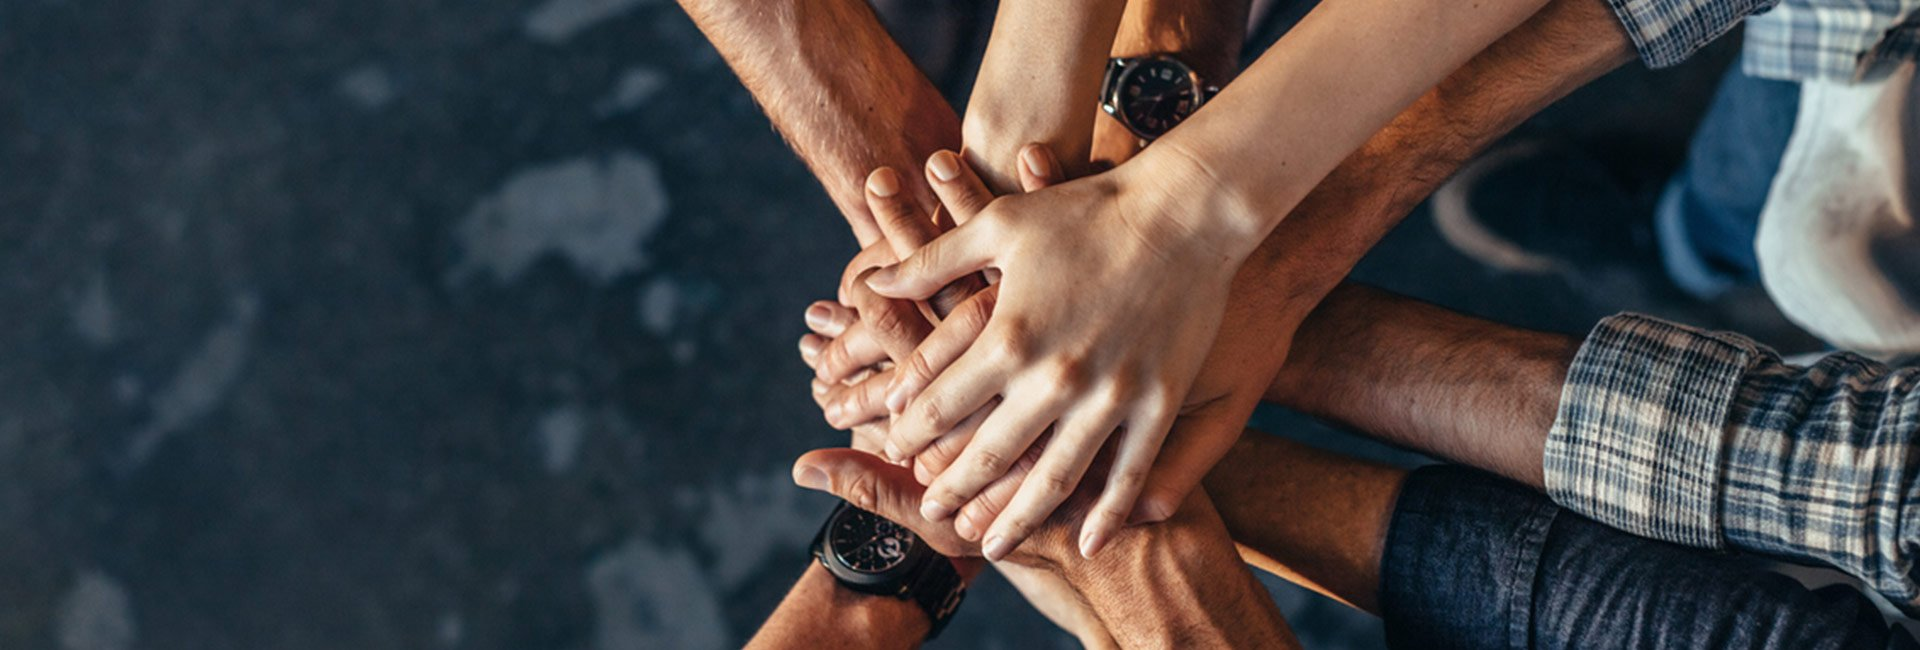 5 ways to improve teamwork in the workplace